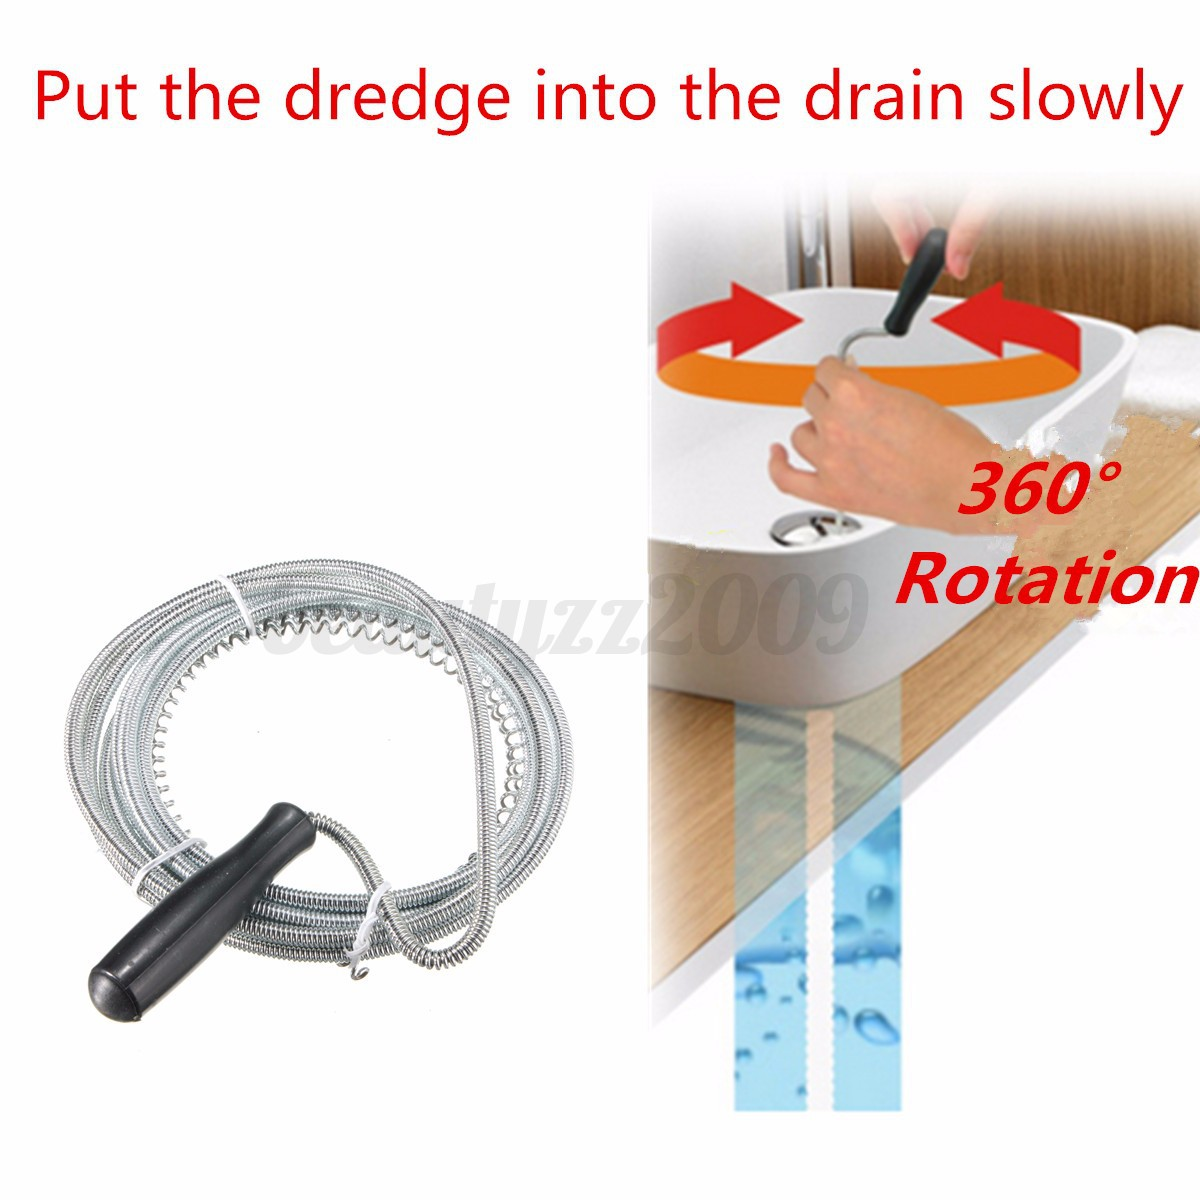 3m sink unblocker drain pipe steel wire cleaner plunger kitchen toilet hole. Black Bedroom Furniture Sets. Home Design Ideas